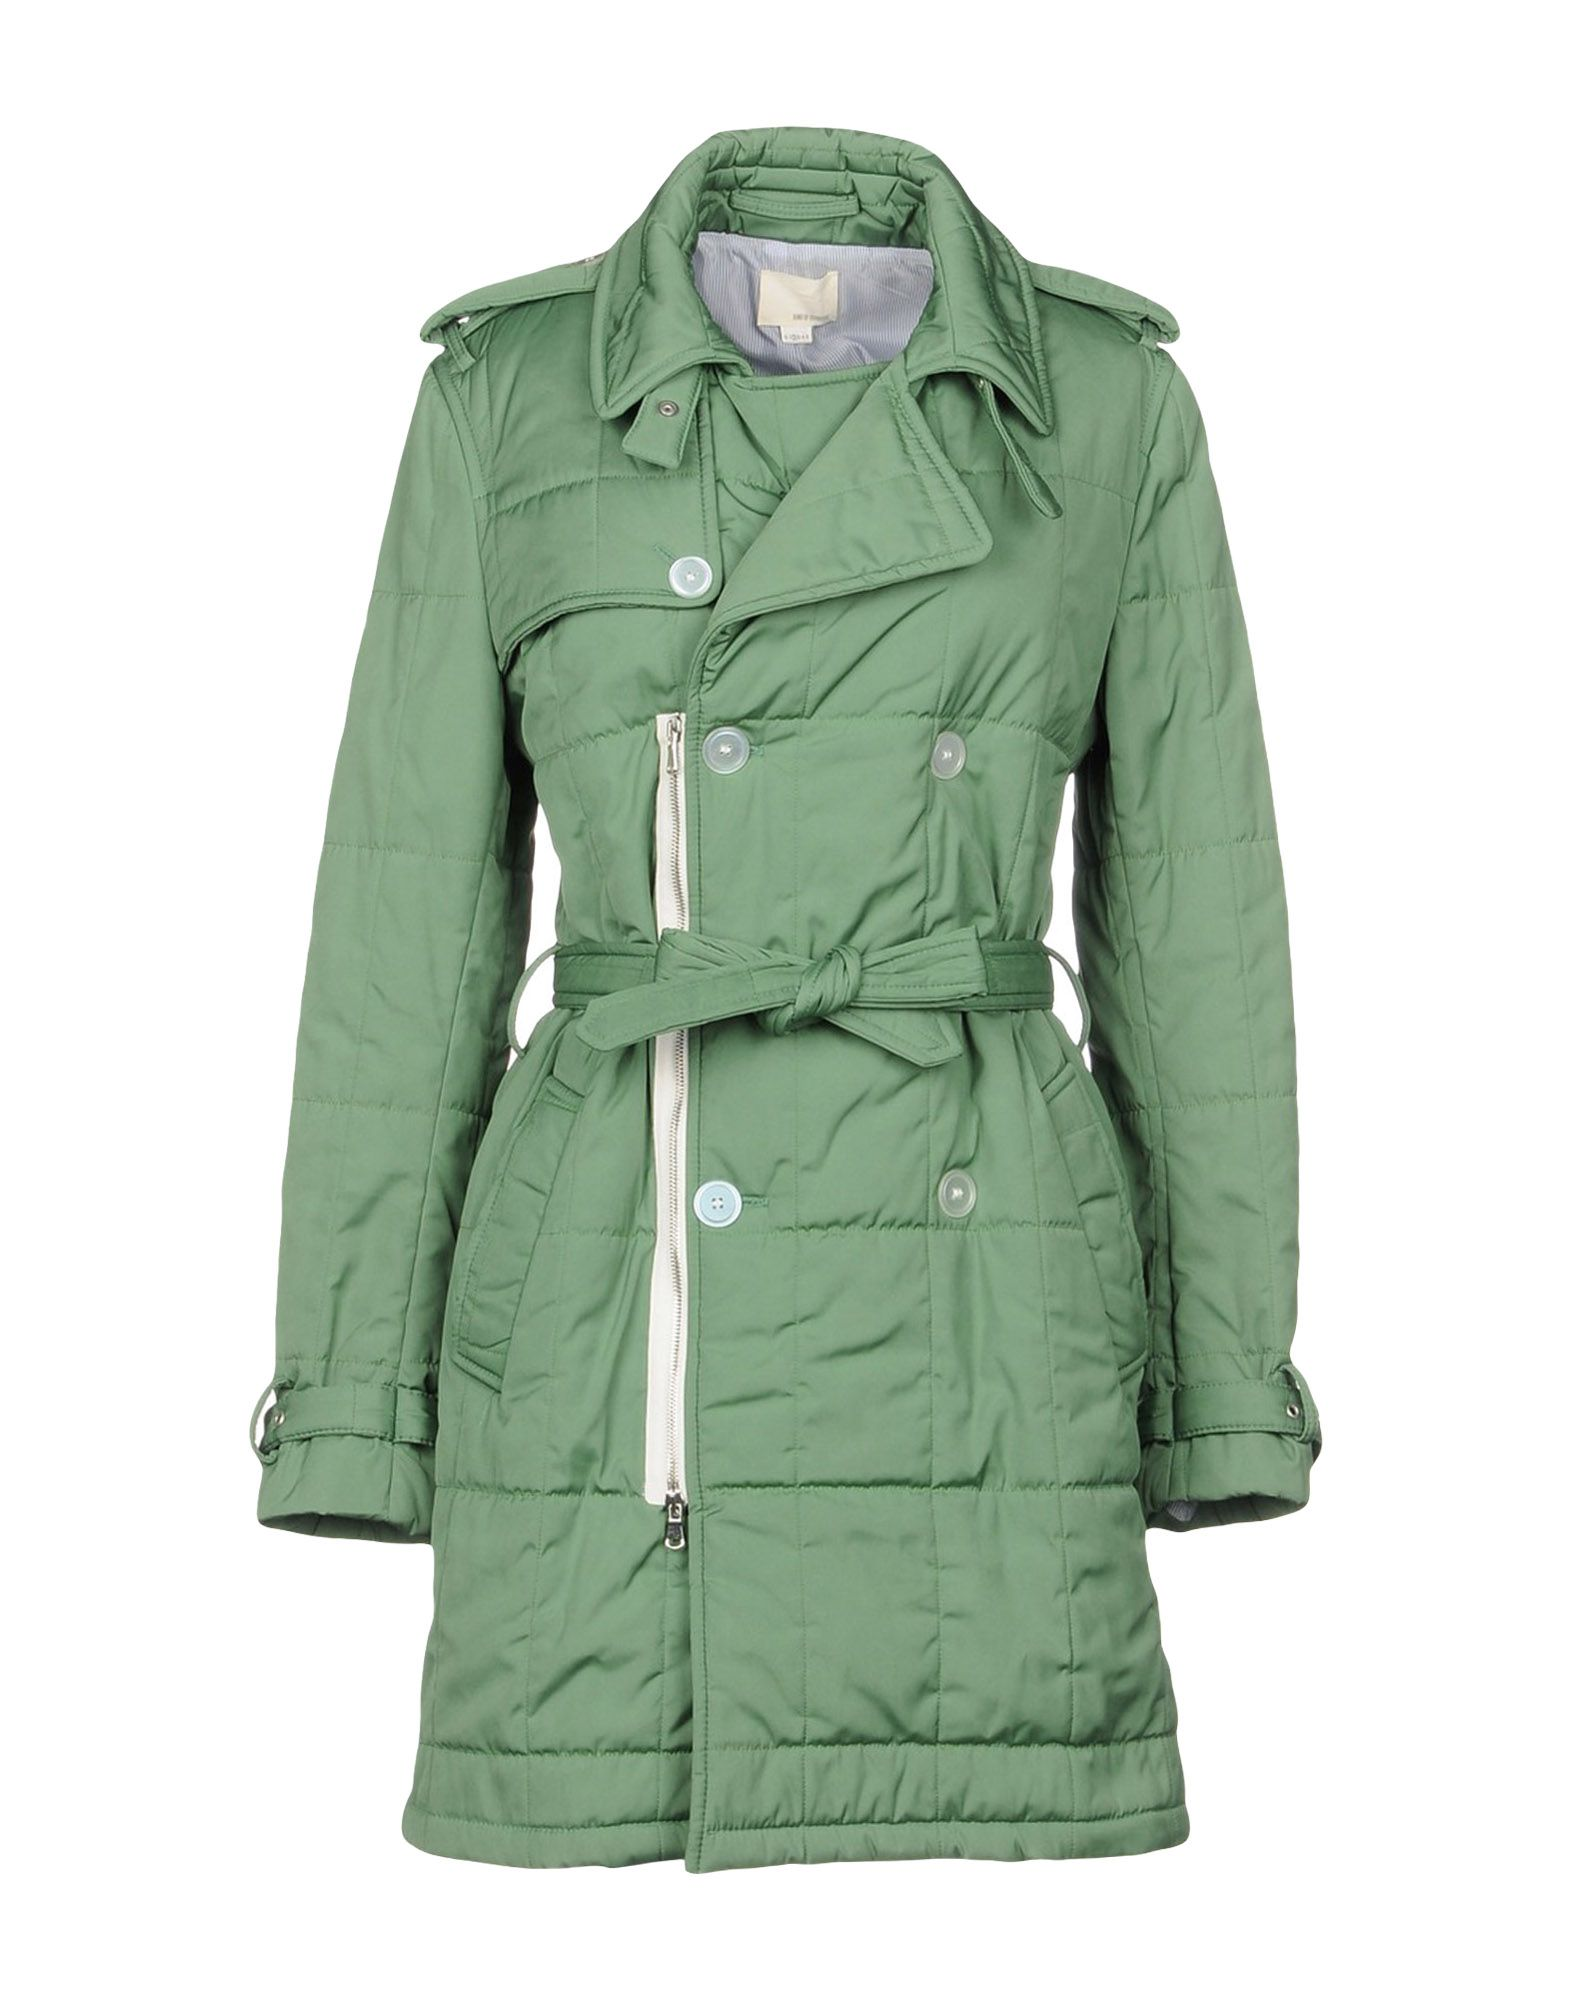 BAND OF OUTSIDERS Double Breasted Pea Coat in Light Green